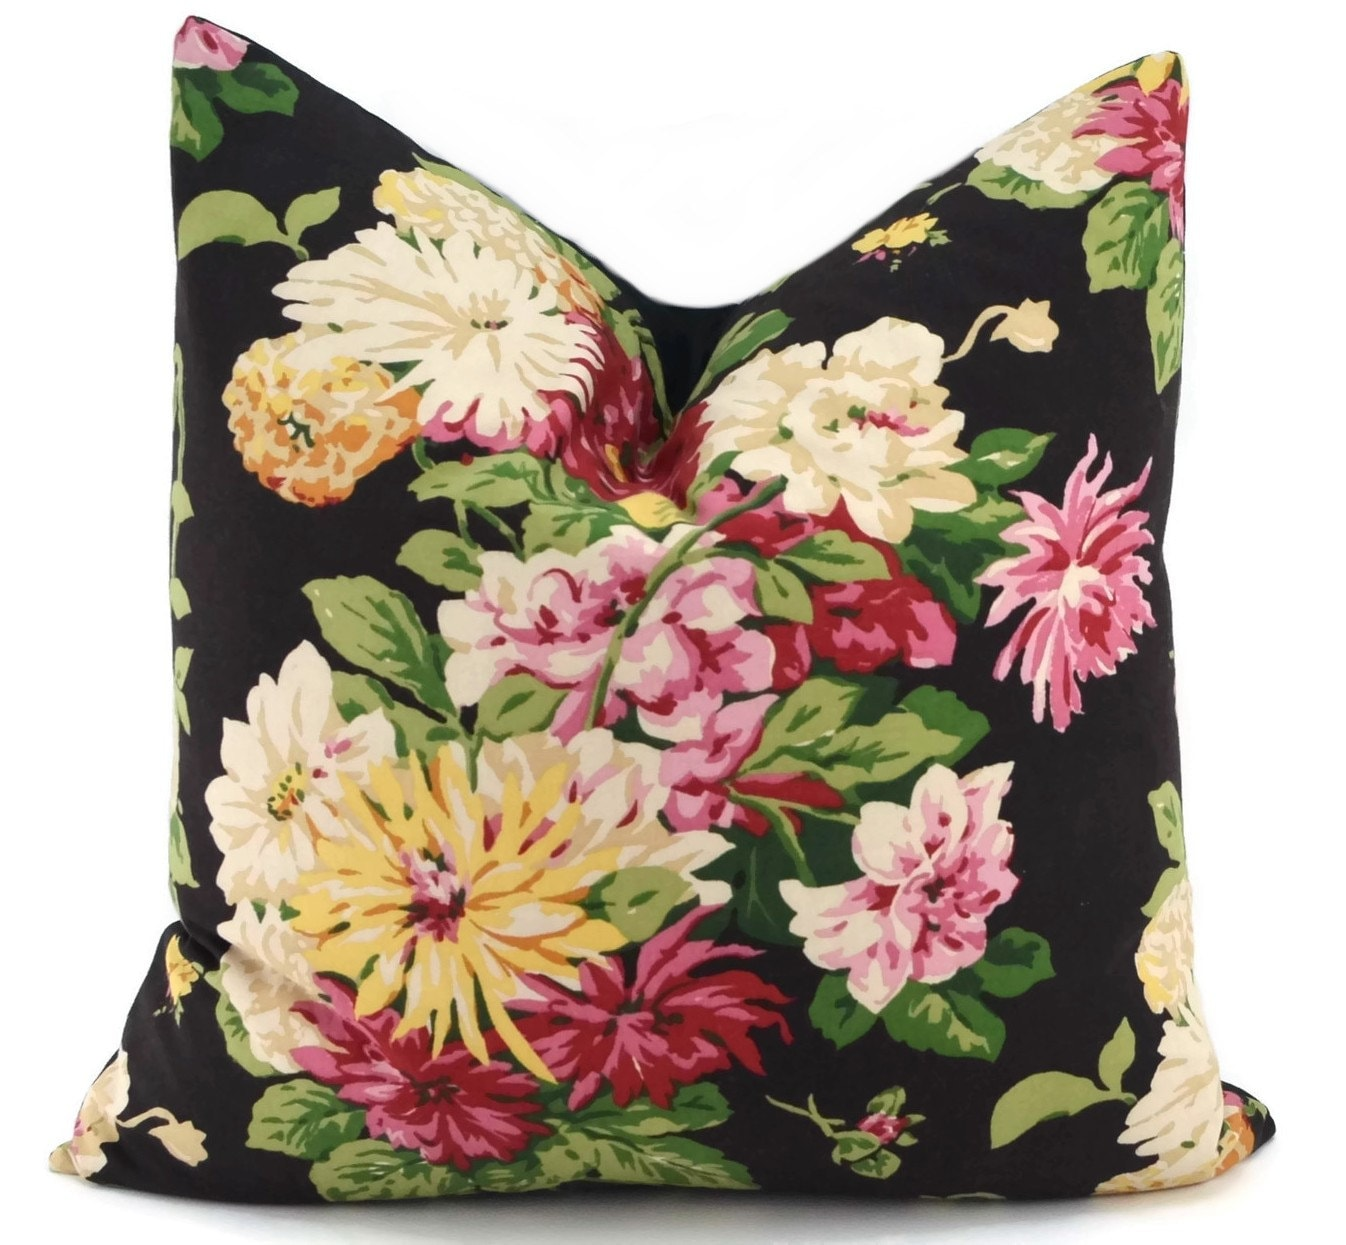 Black Flower Throw Pillow : SALE Black Floral Throw Pillow Cover Peony Flower PIllow